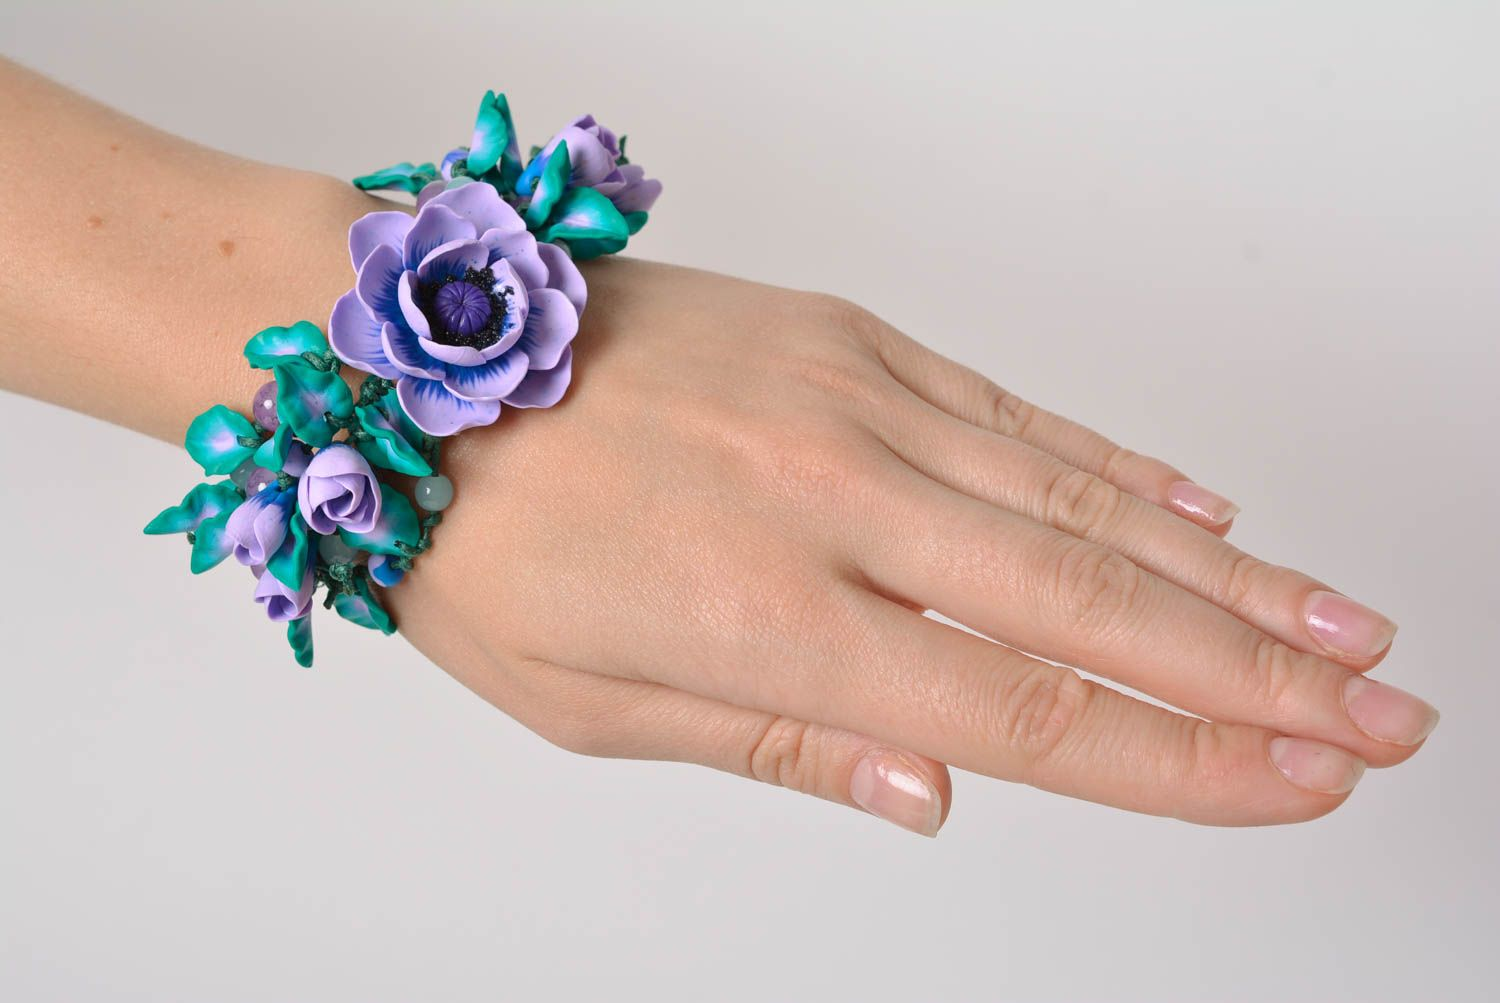 polymer clay bracelets Handmade designer wrist bracelet with blue volume polymer clay flowers - MADEheart.com